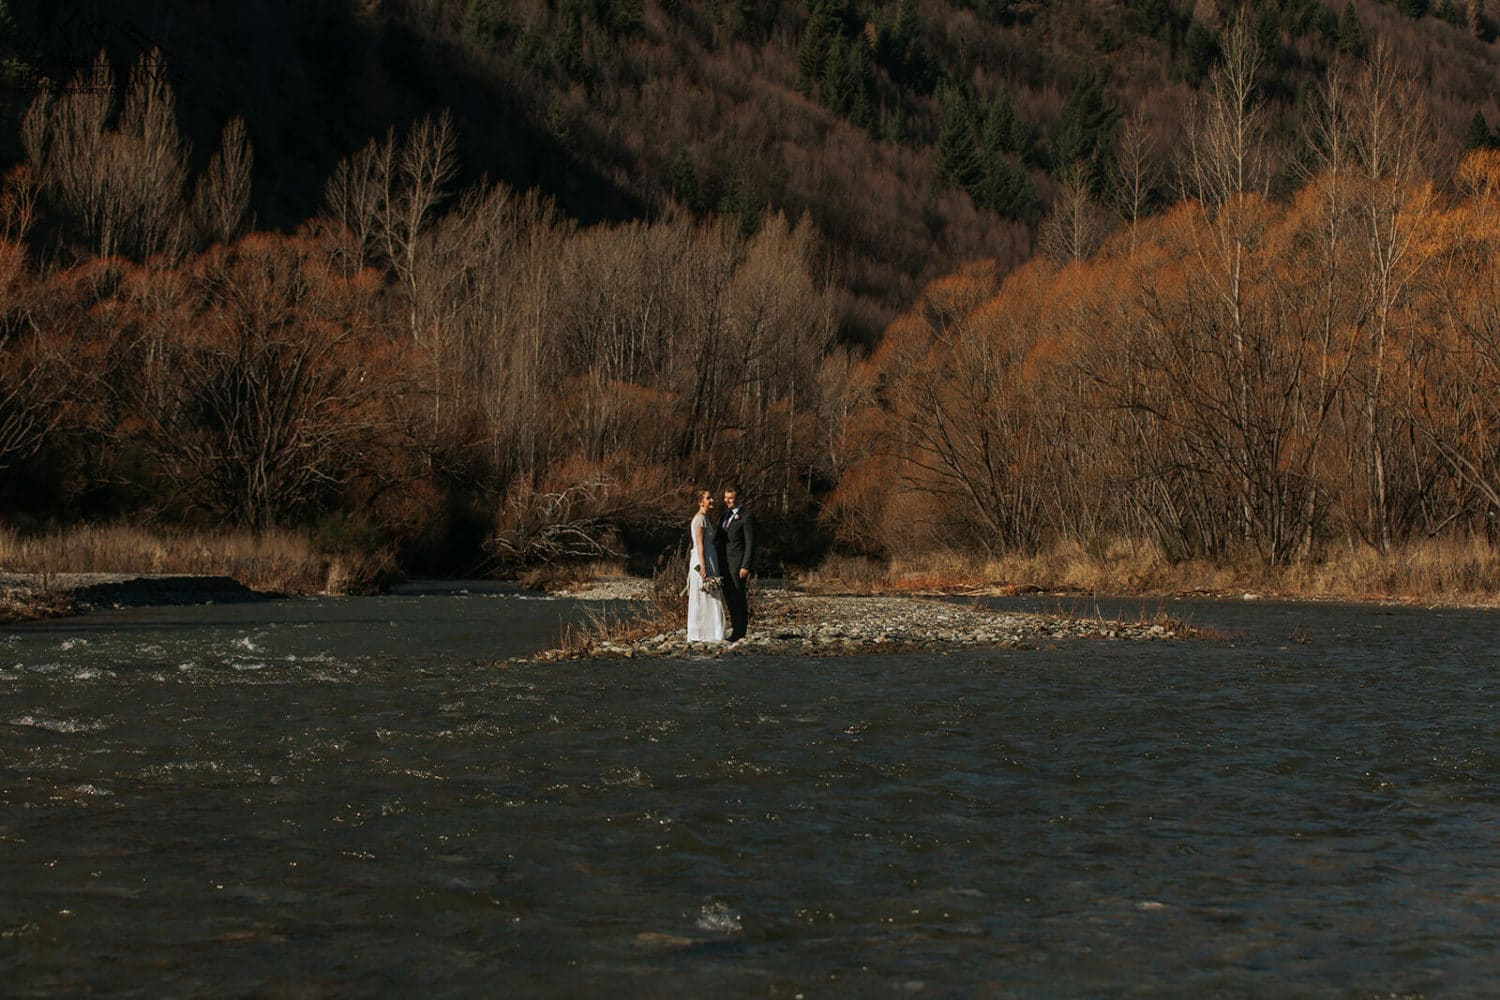 Wedding photos in the river in Arrowtown